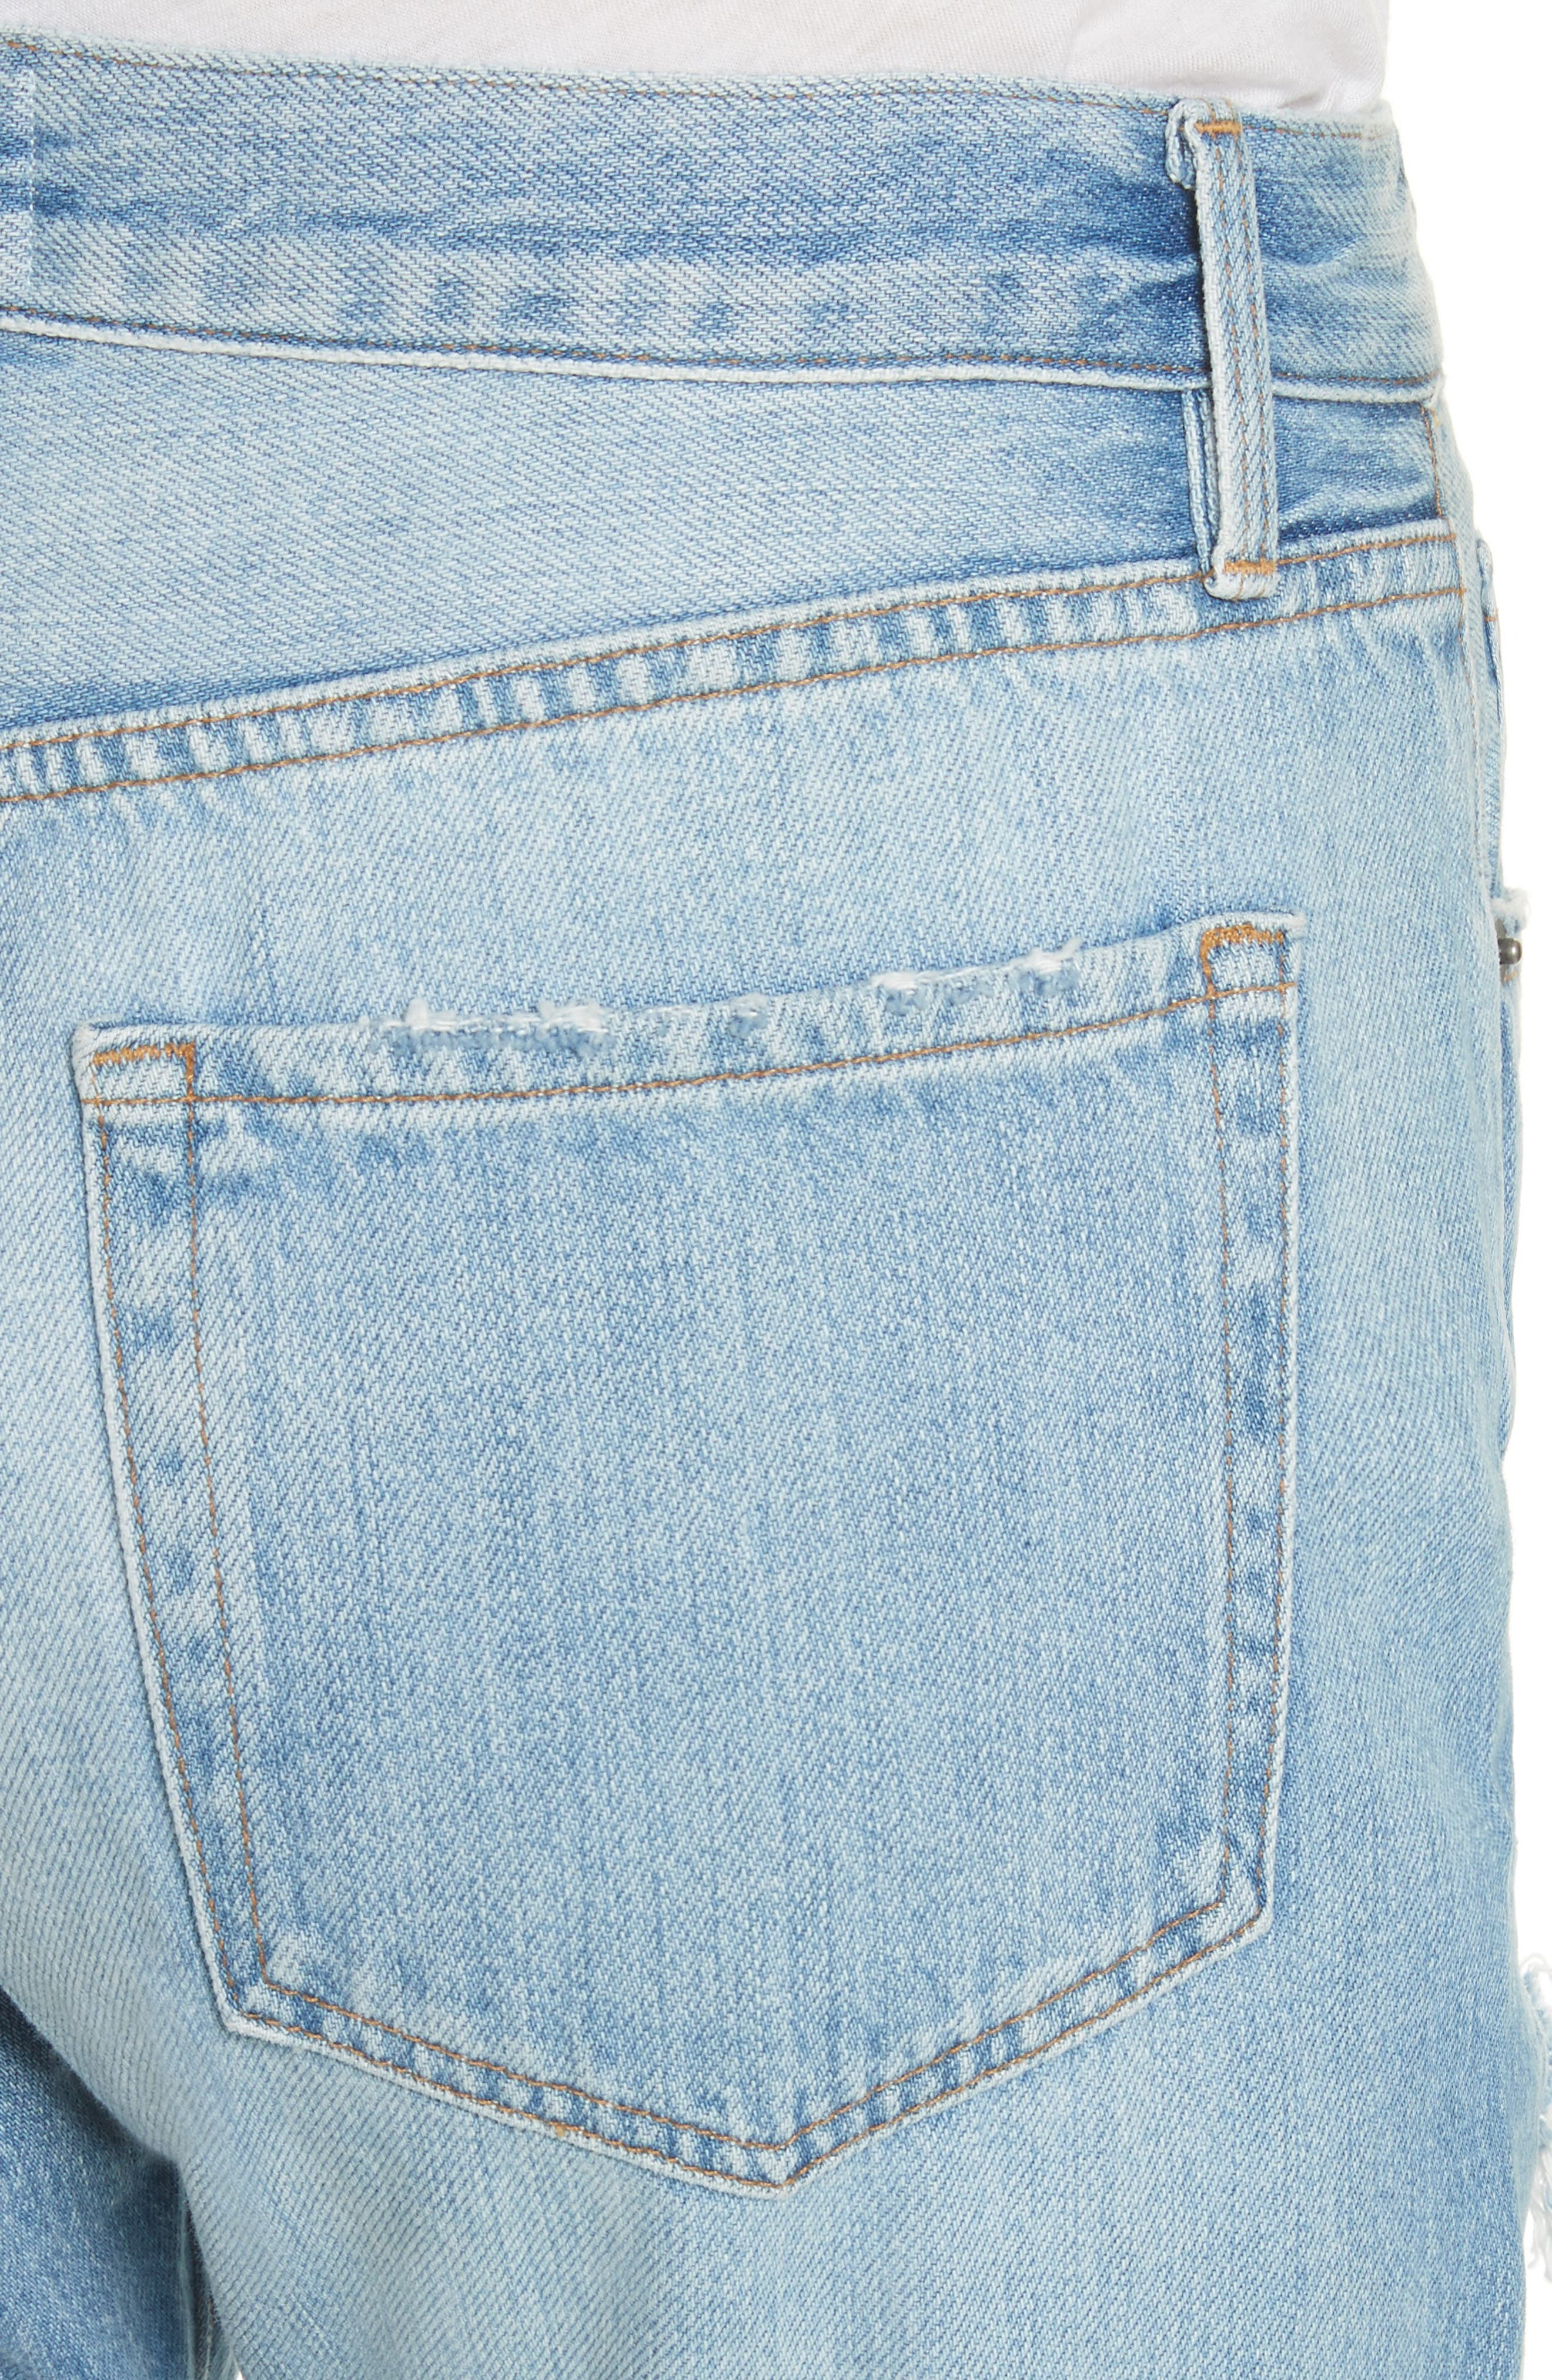 Le Original Ripped High Waist Skinny Jeans,                             Alternate thumbnail 4, color,                             POMDALE